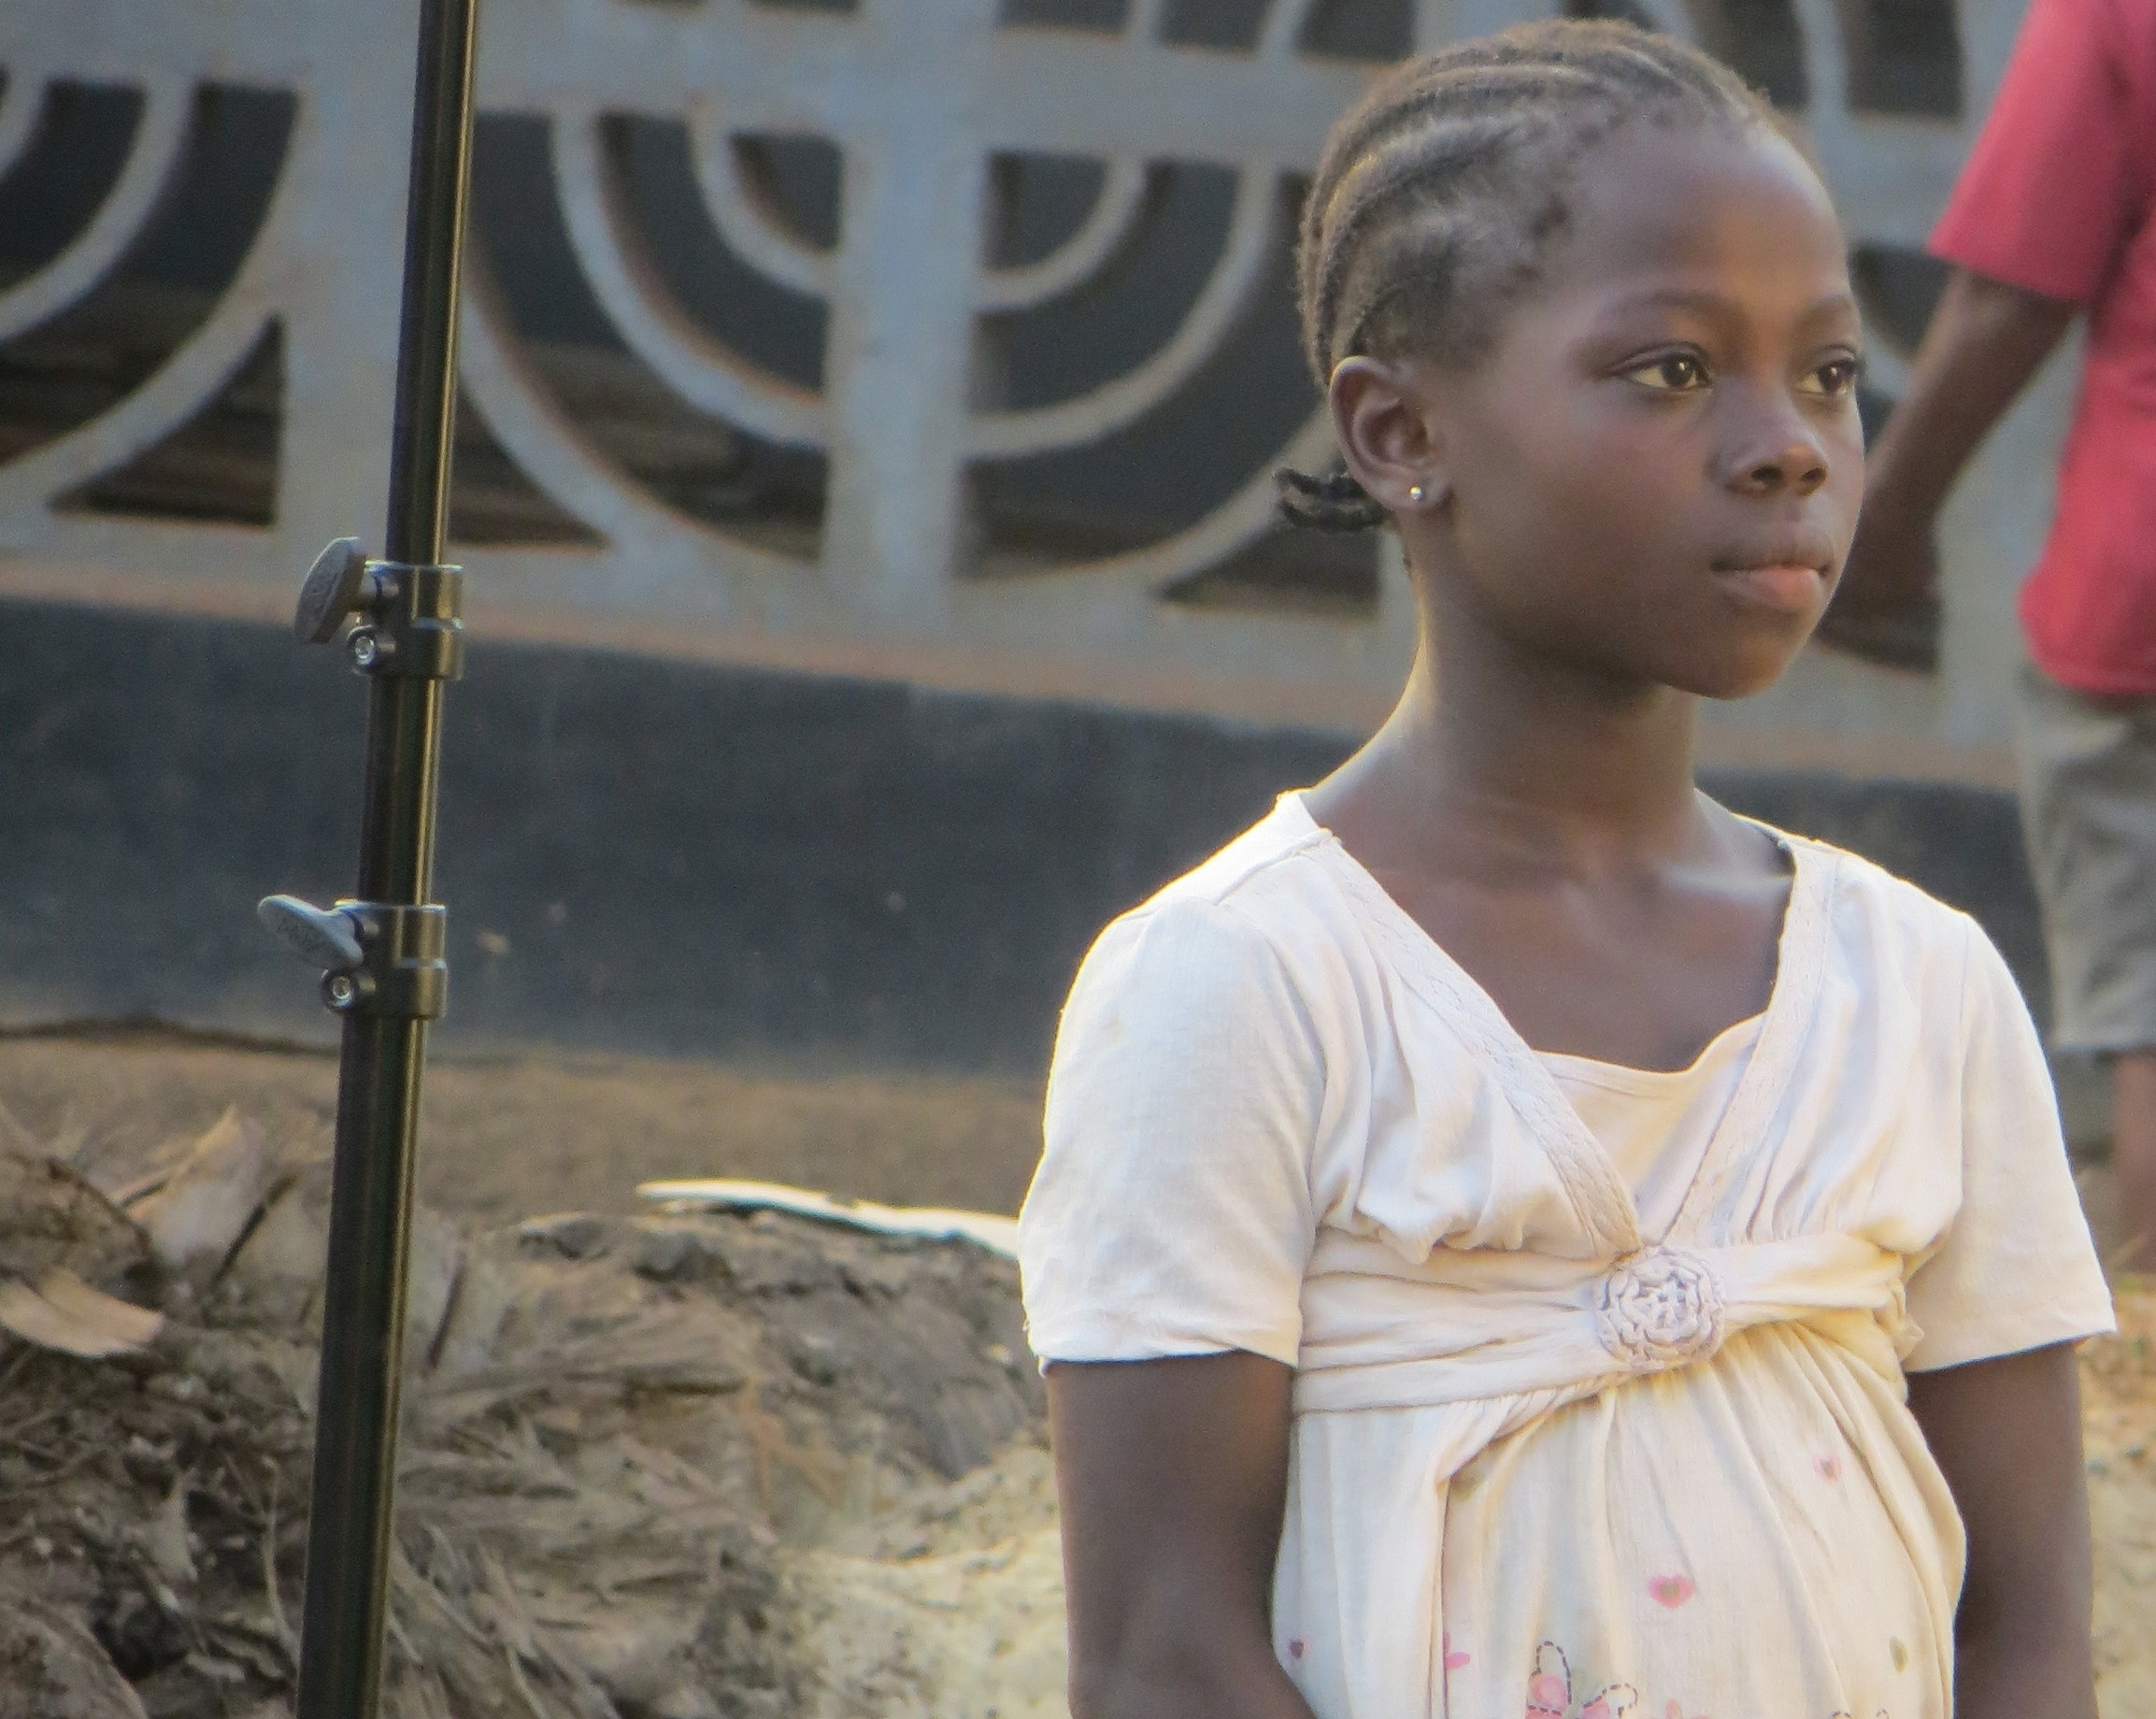 A child watches filming beside a microphone stand in Liberia.